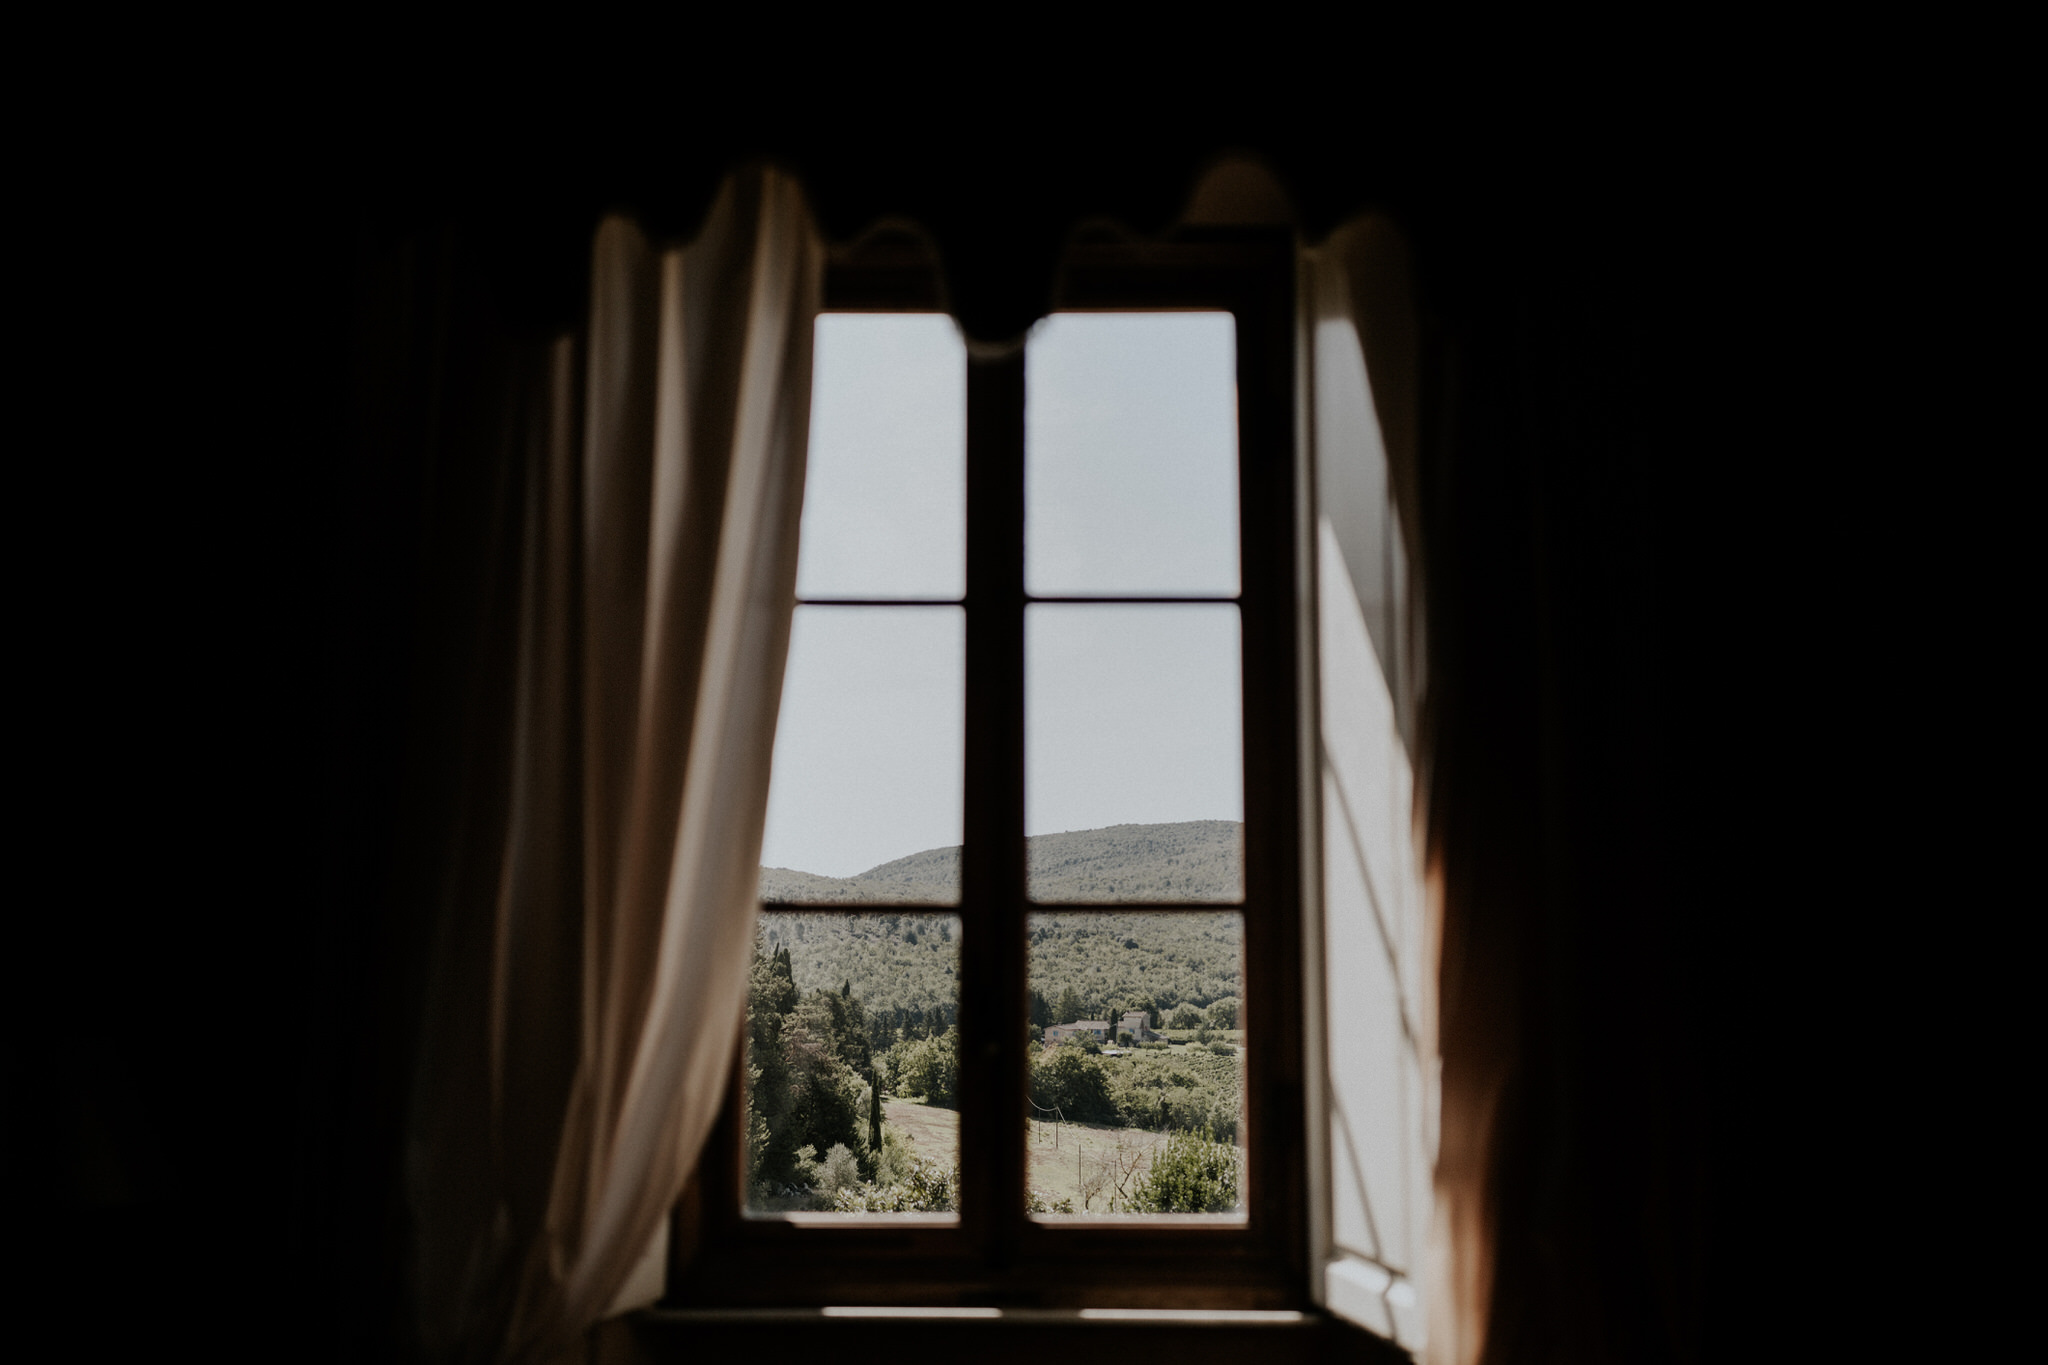 View of sunny fields and trees through a window in the Val d'Orcia, Borgo Stomenanno, Italy